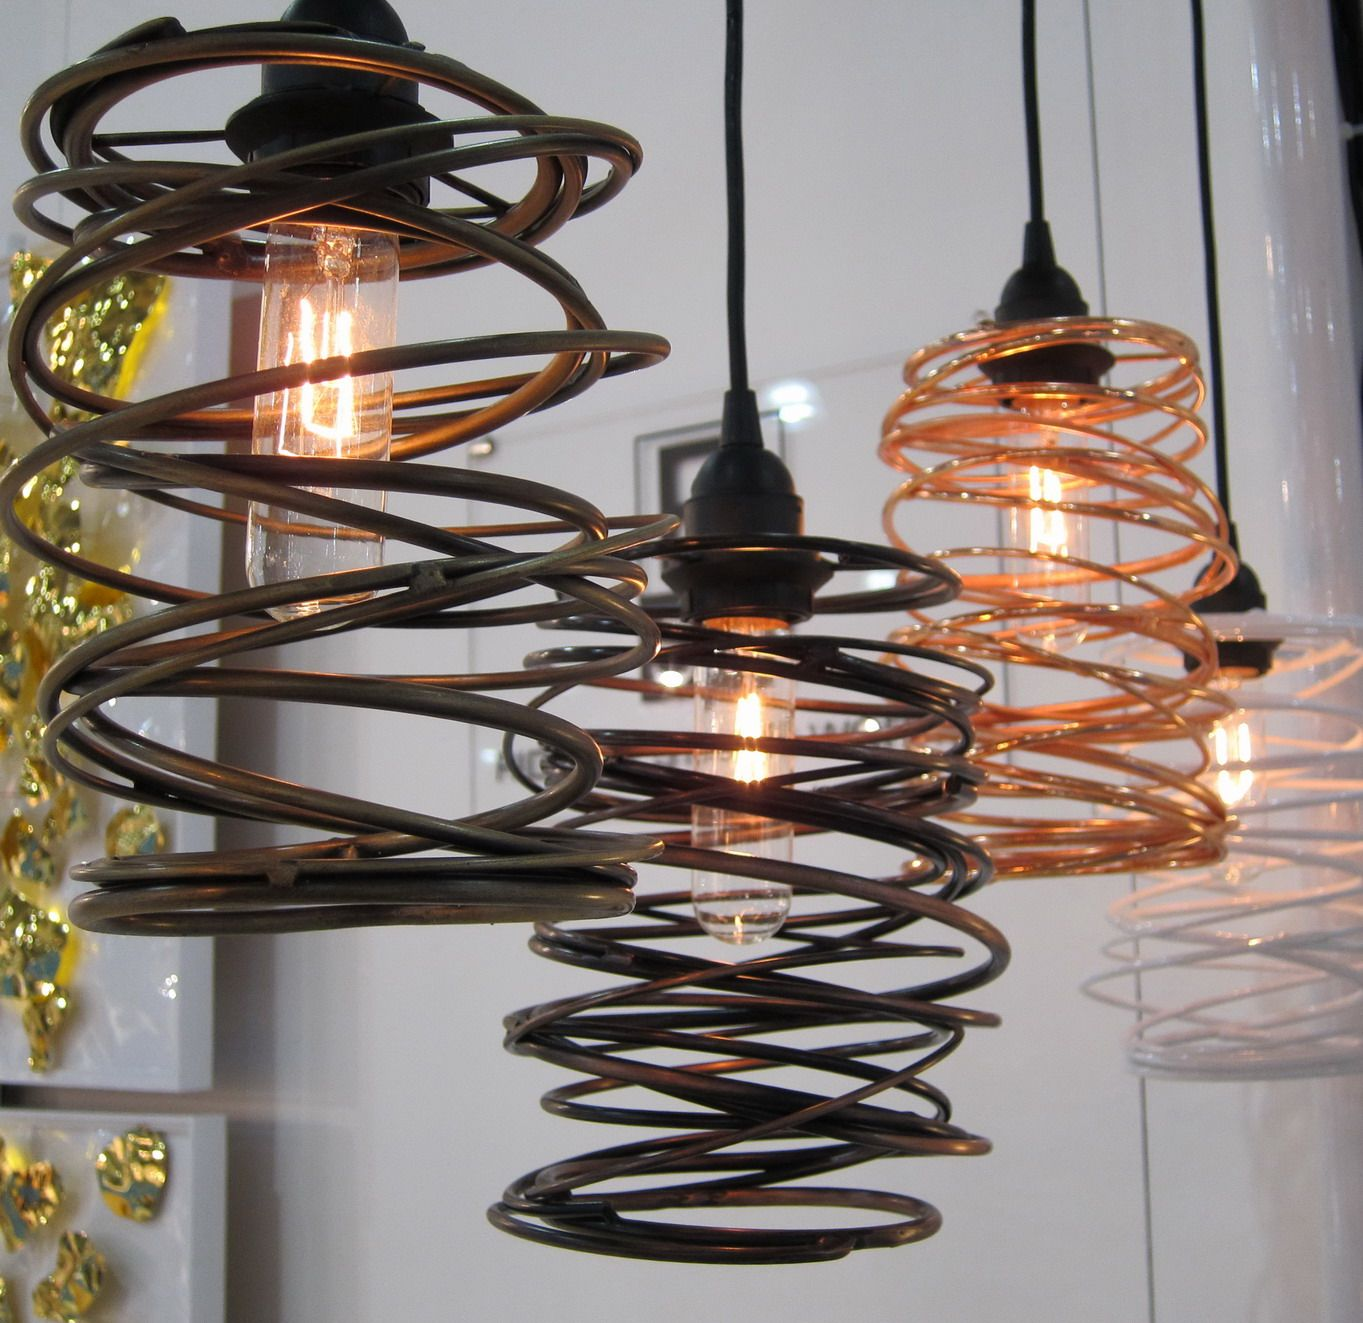 Interesting Light Fixtures: Coil Nests--- I Need Your Springs Sherrie So I Can Make